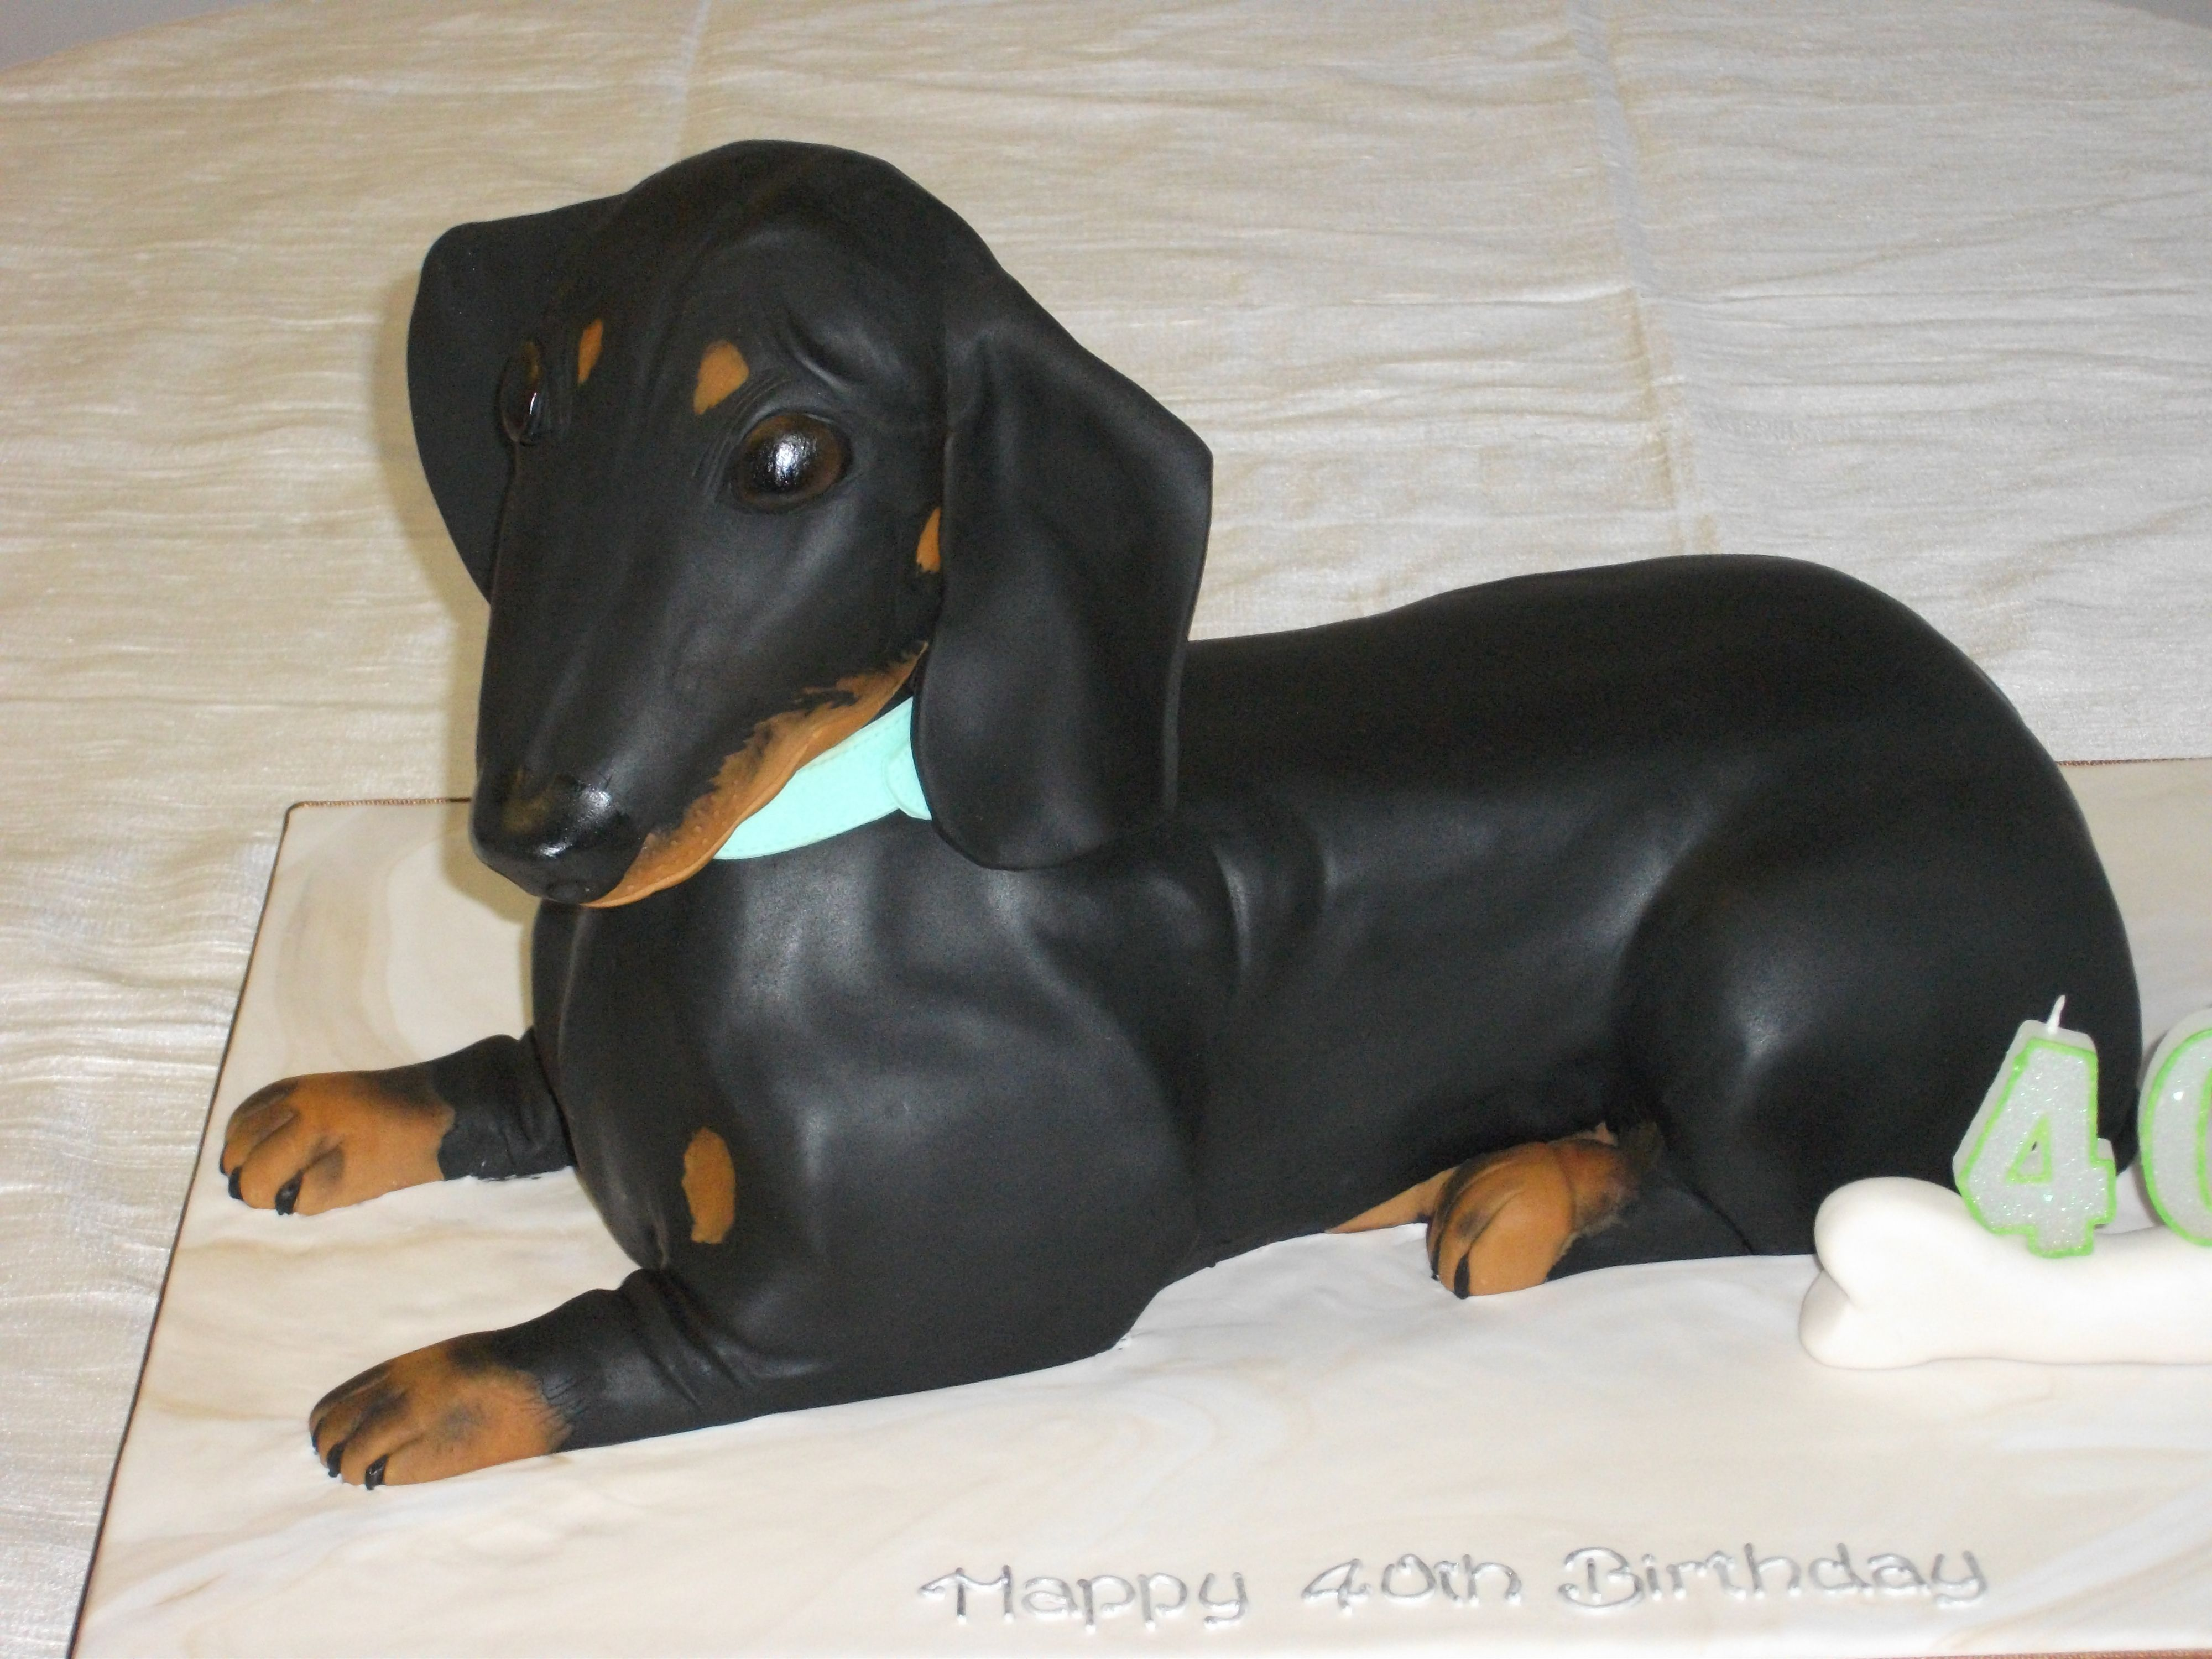 Kitchen, Dining & Bar Baking Accs. & Cake Decorating Dachshund Dog Edible Cake Frosting Sheet